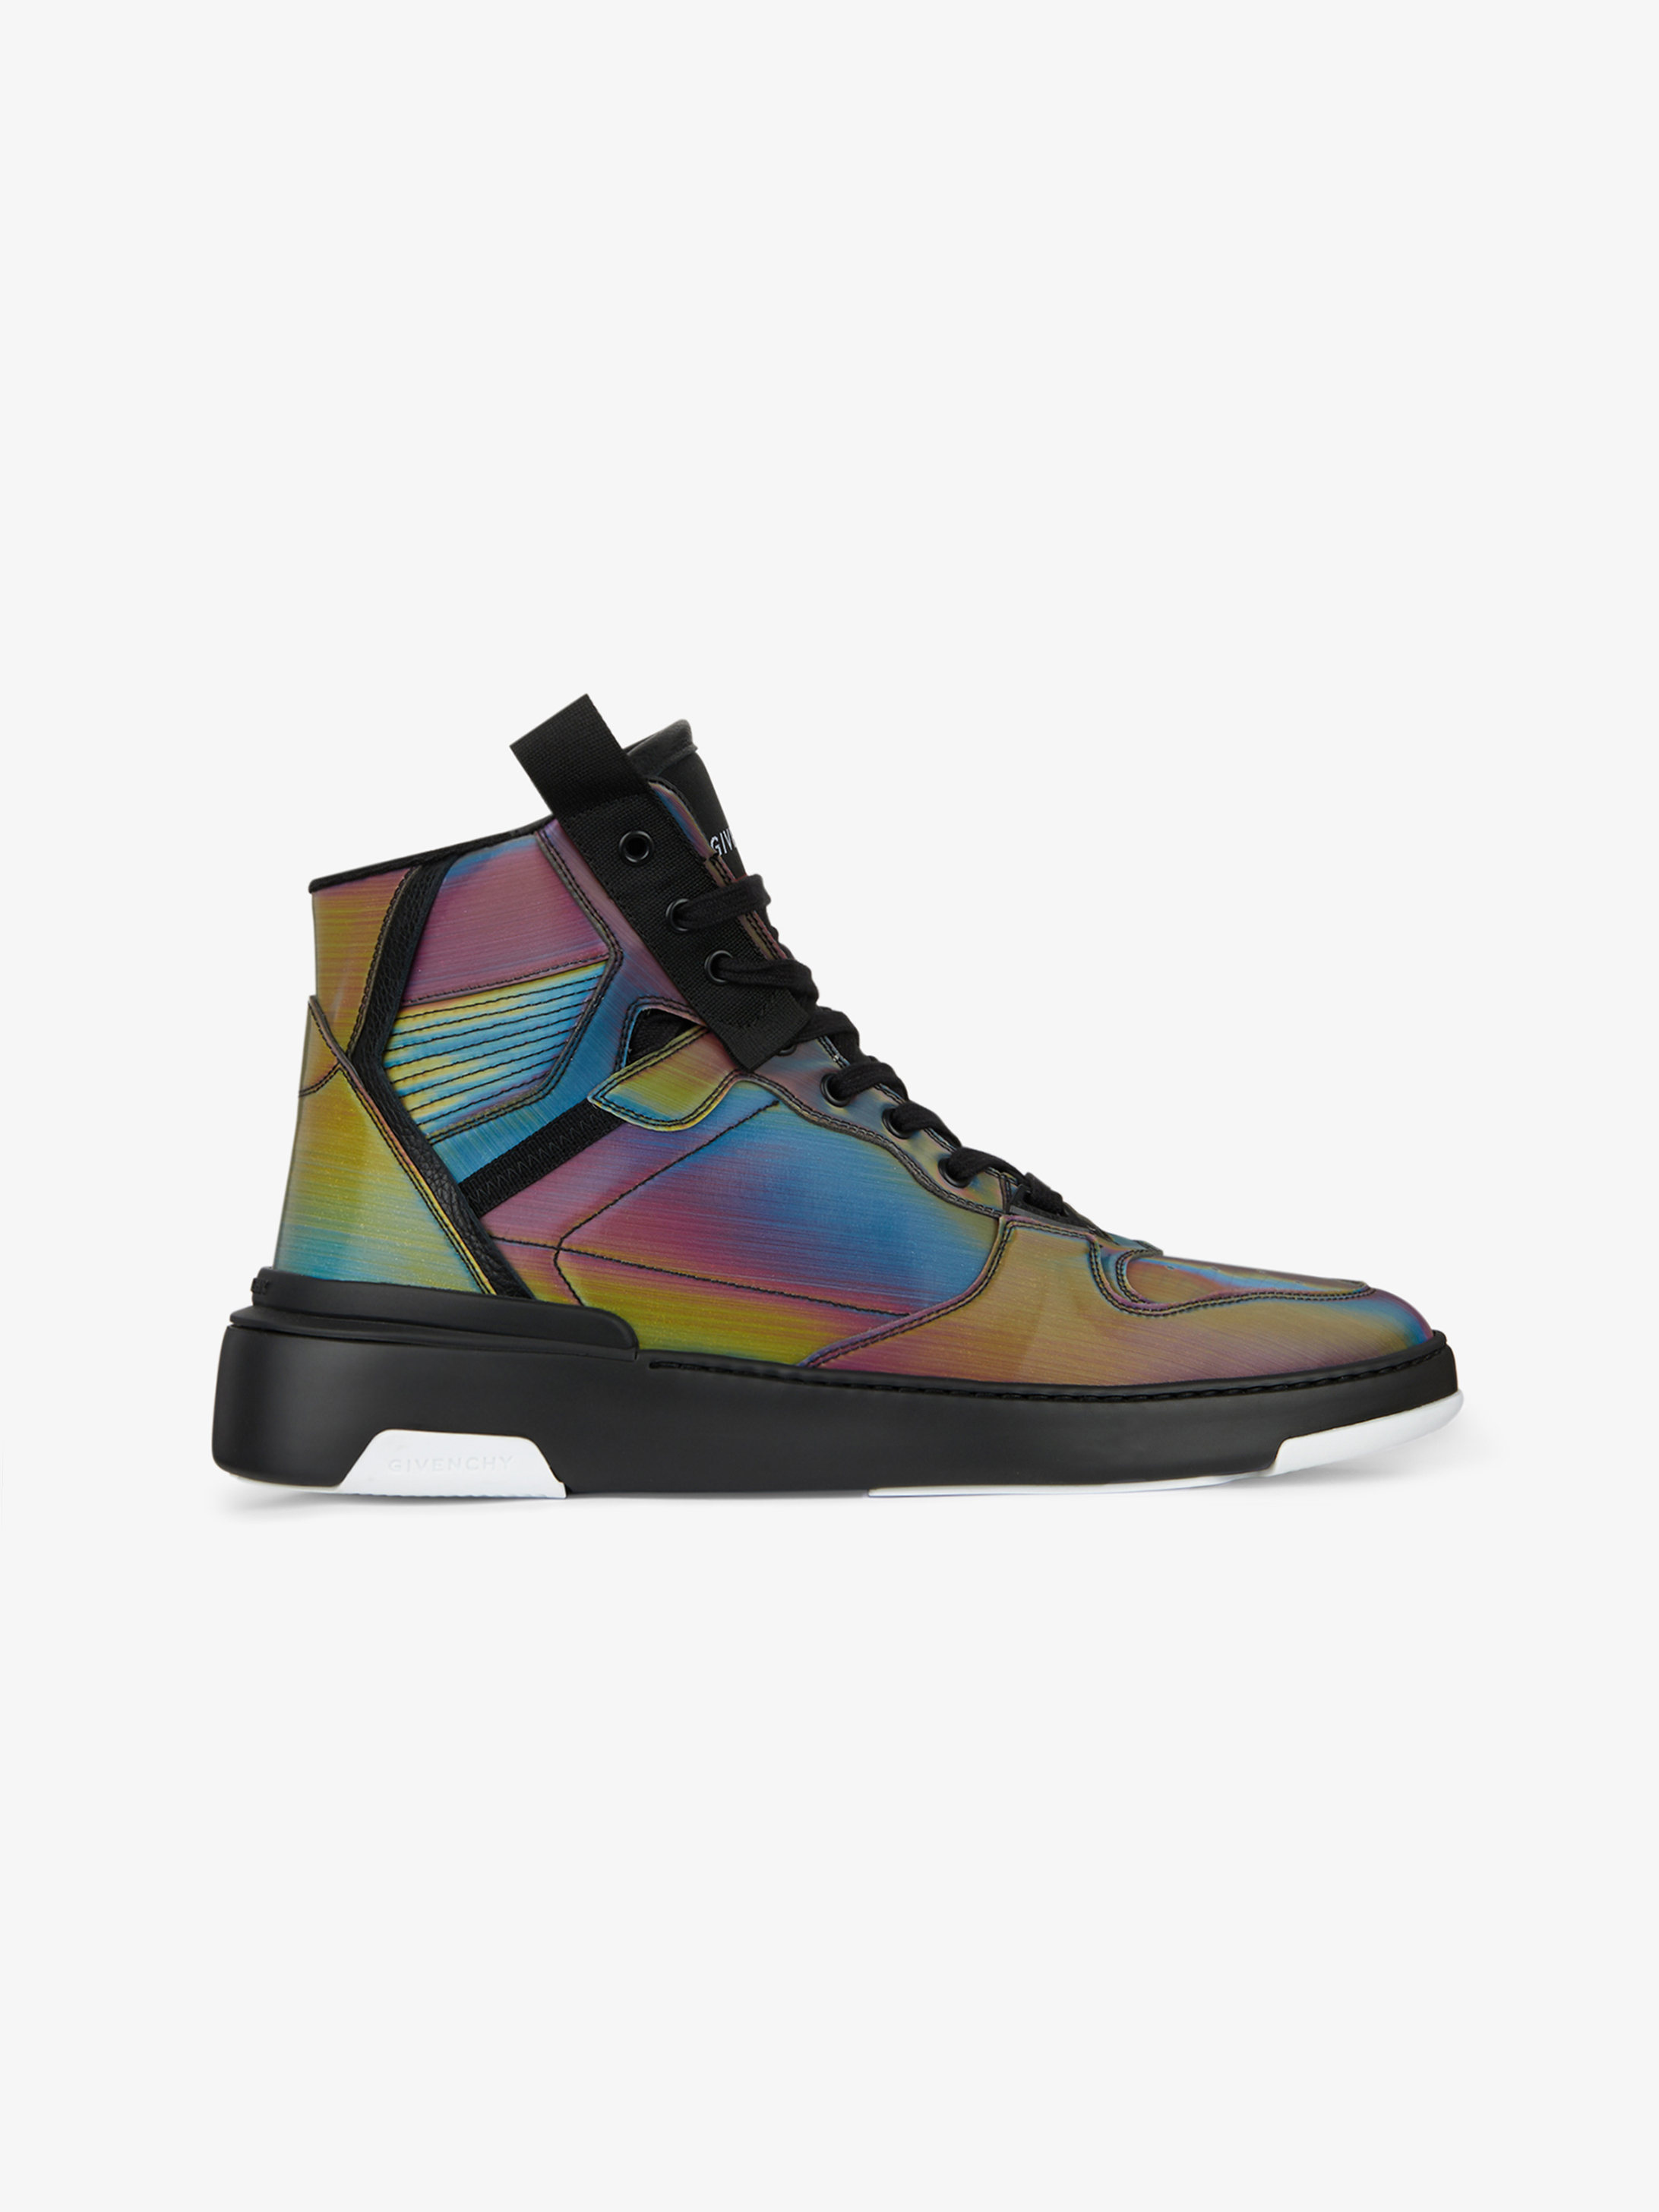 WING high sneakers in holographic canvas